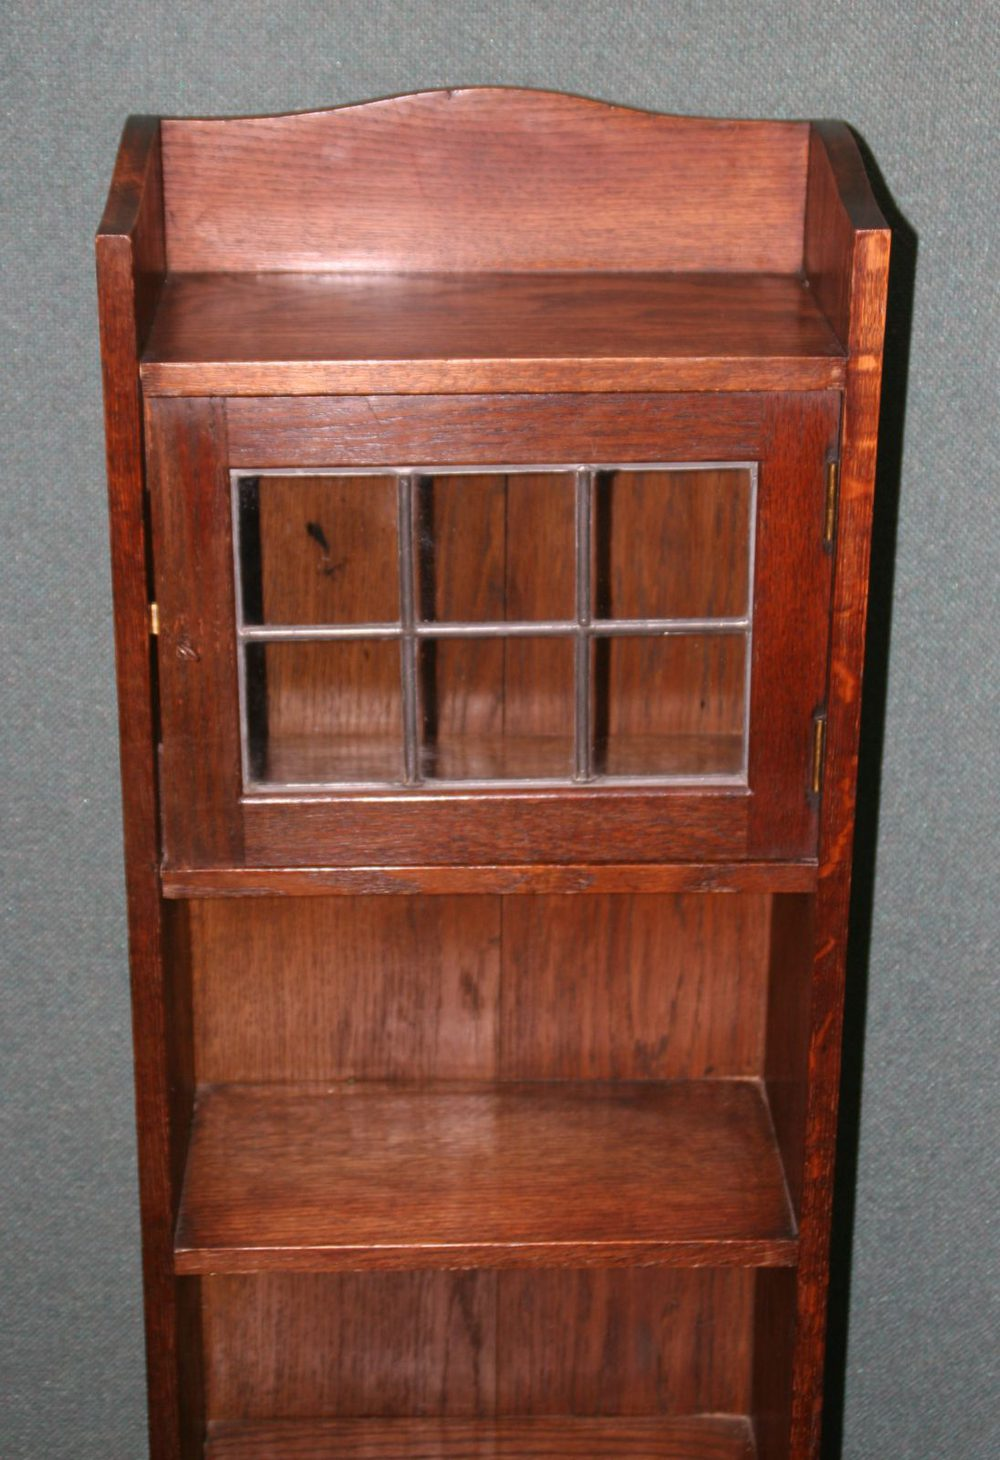 liberty arts and crafts oak caxton glazed bookcase. Black Bedroom Furniture Sets. Home Design Ideas